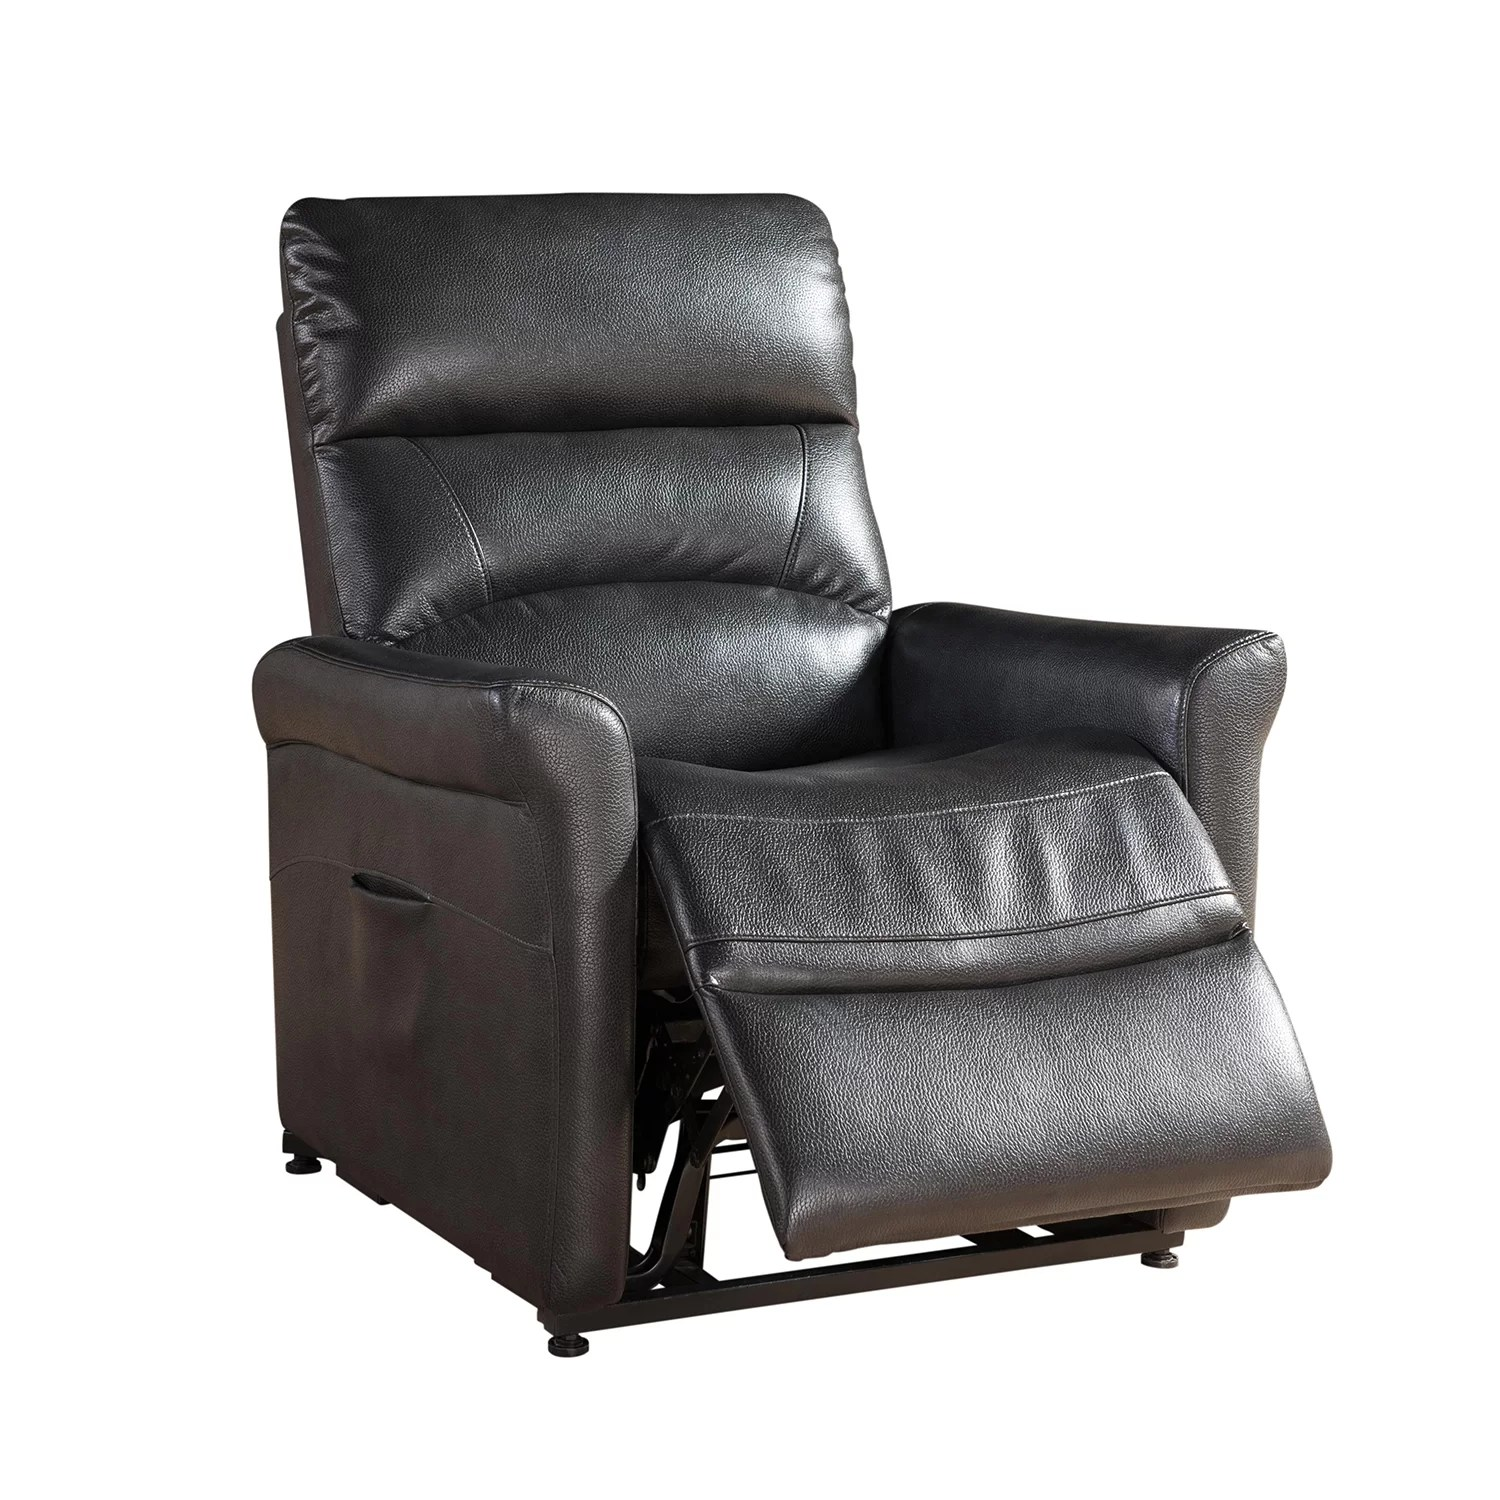 Power Lift Chair Ac Pacific Colby Large Power Reclining Lift Chair Wayfair Ca